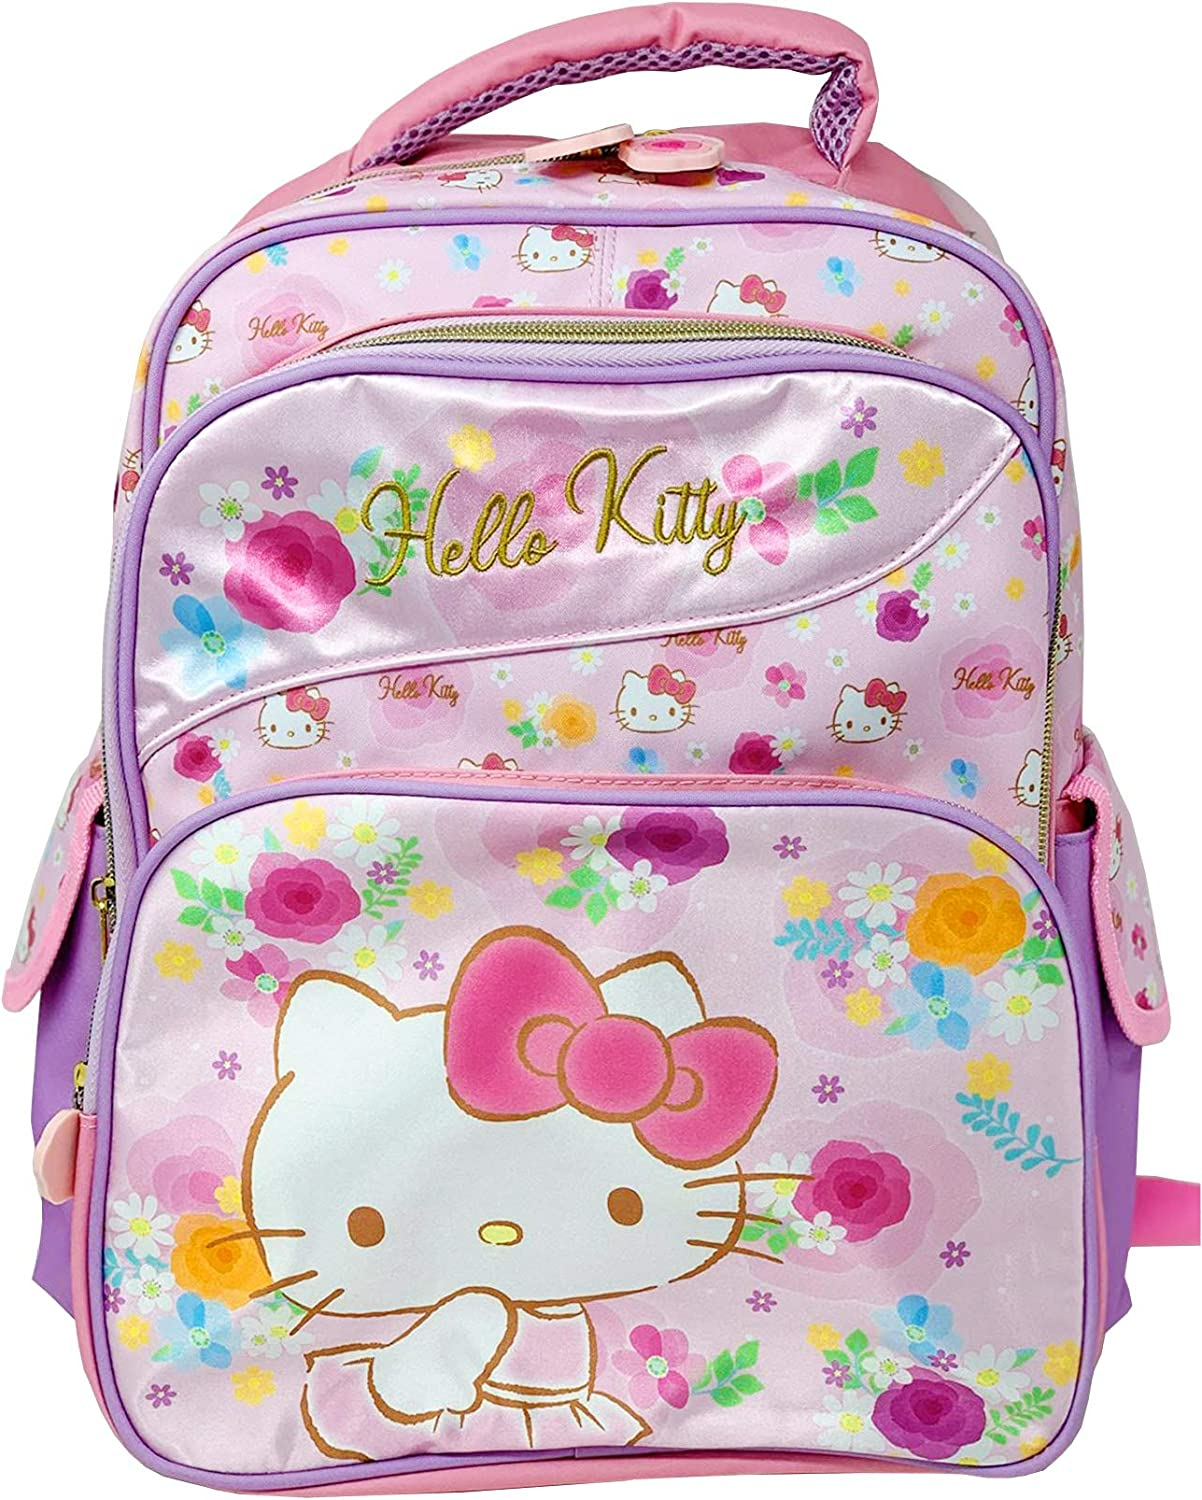 Hello Kitty Backpack Flower Japan Limited Edition 14